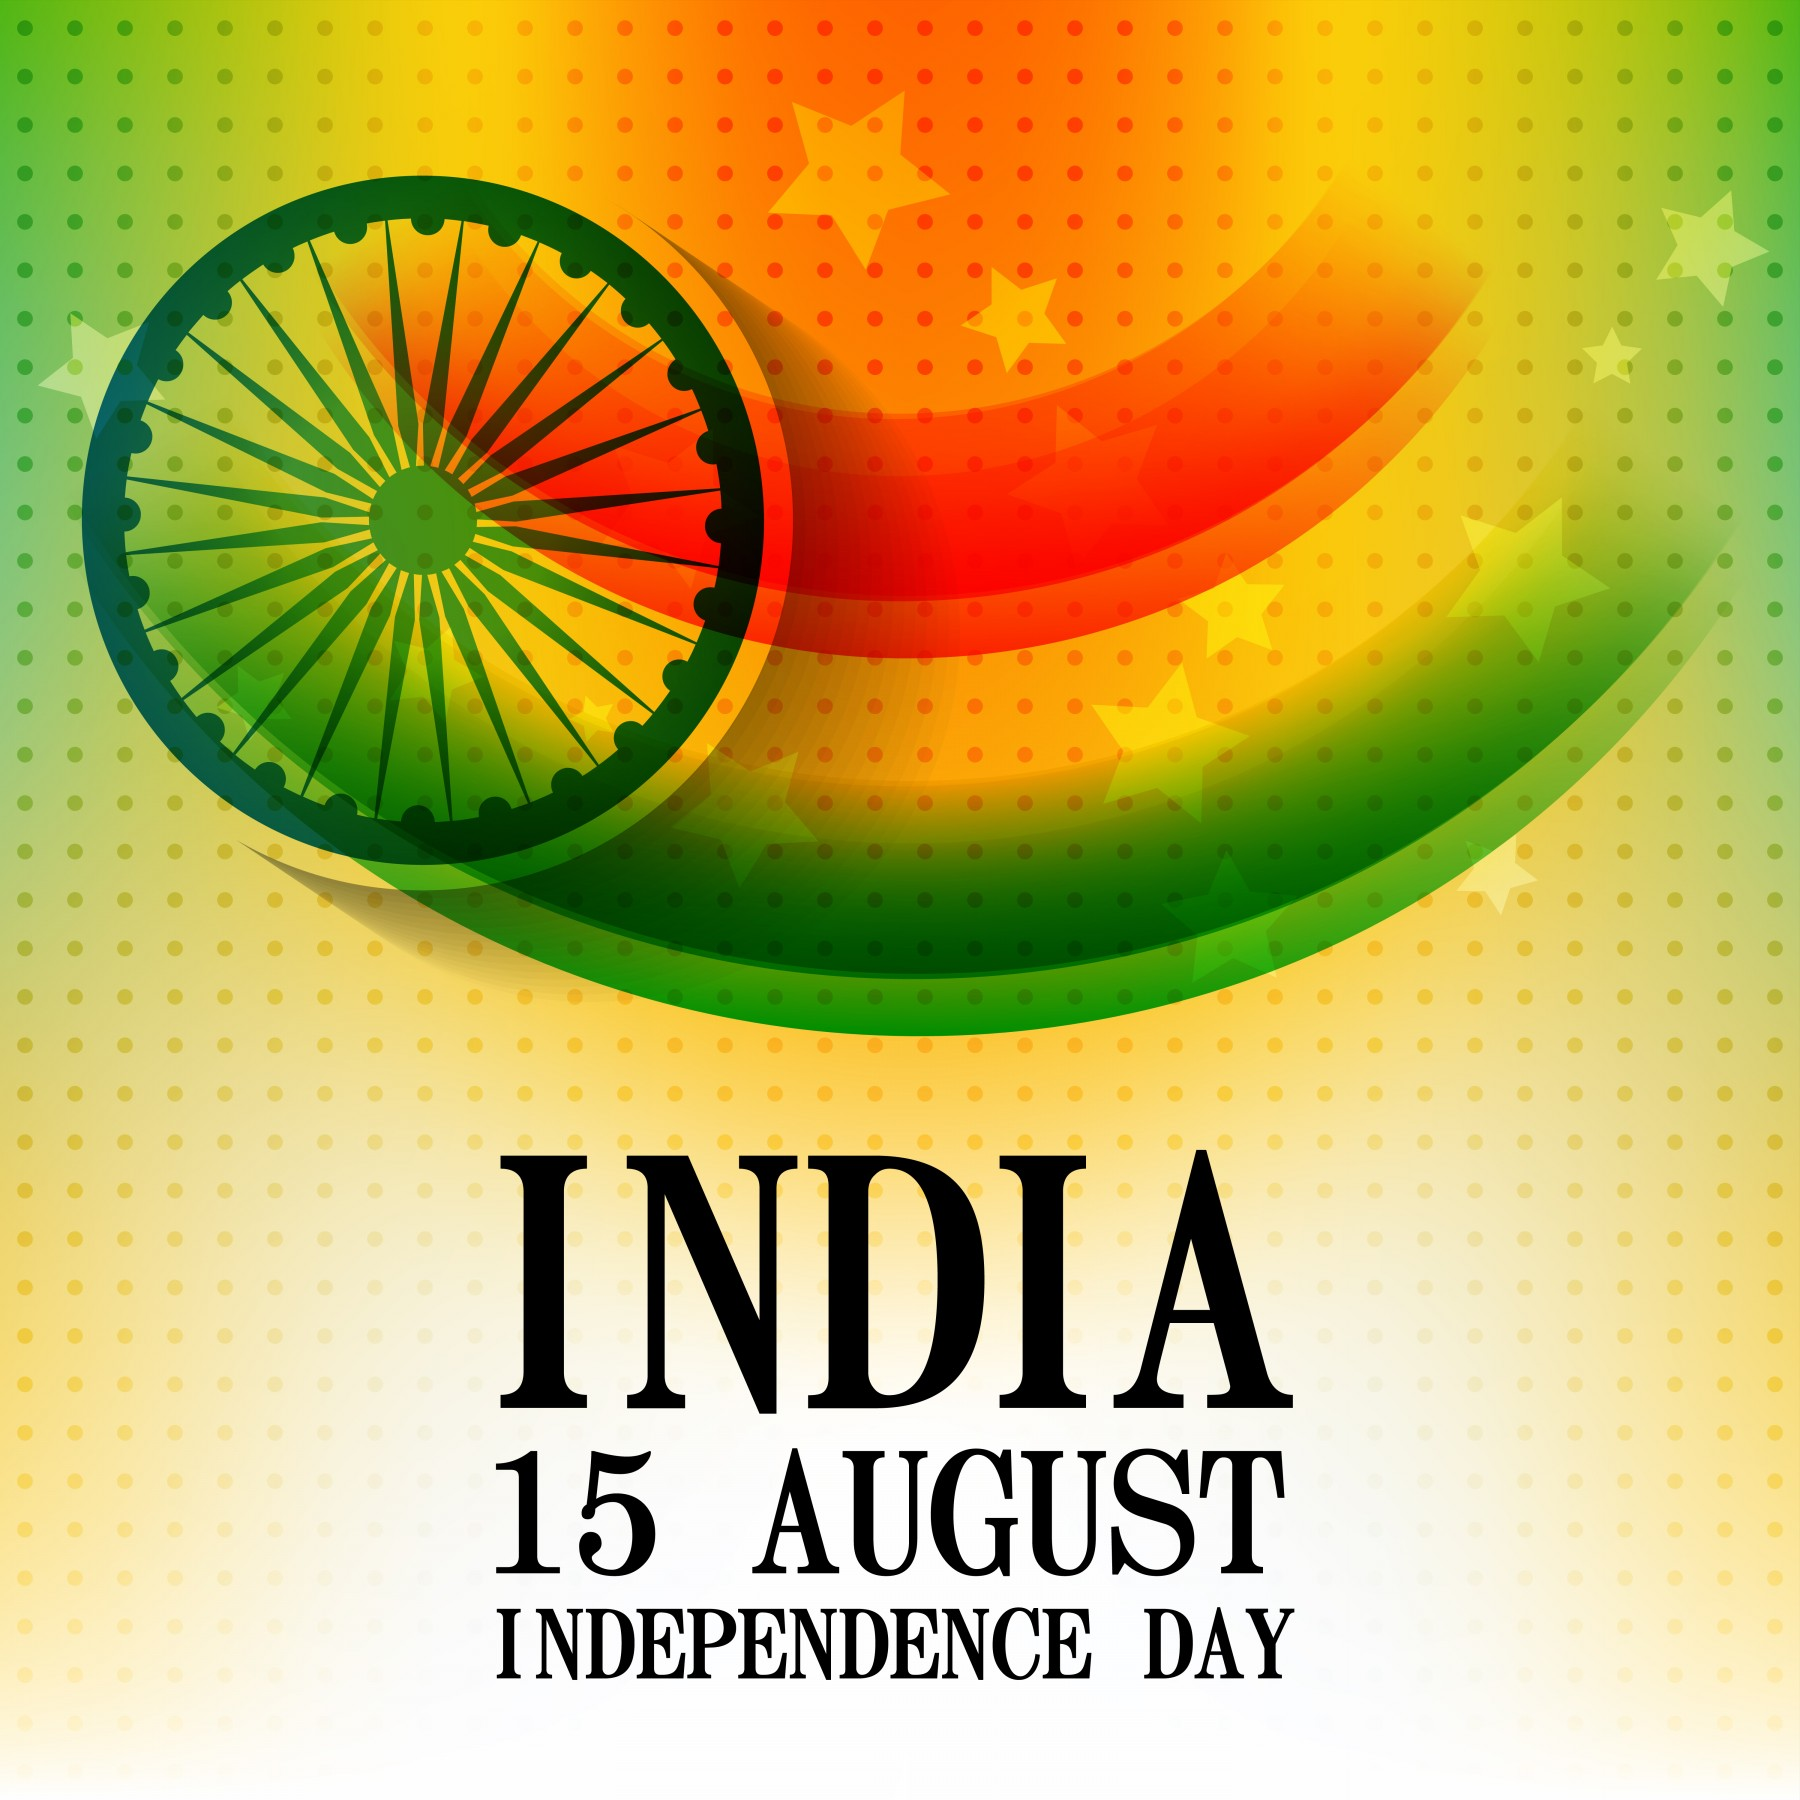 the best and most beautiful independence day images - download free